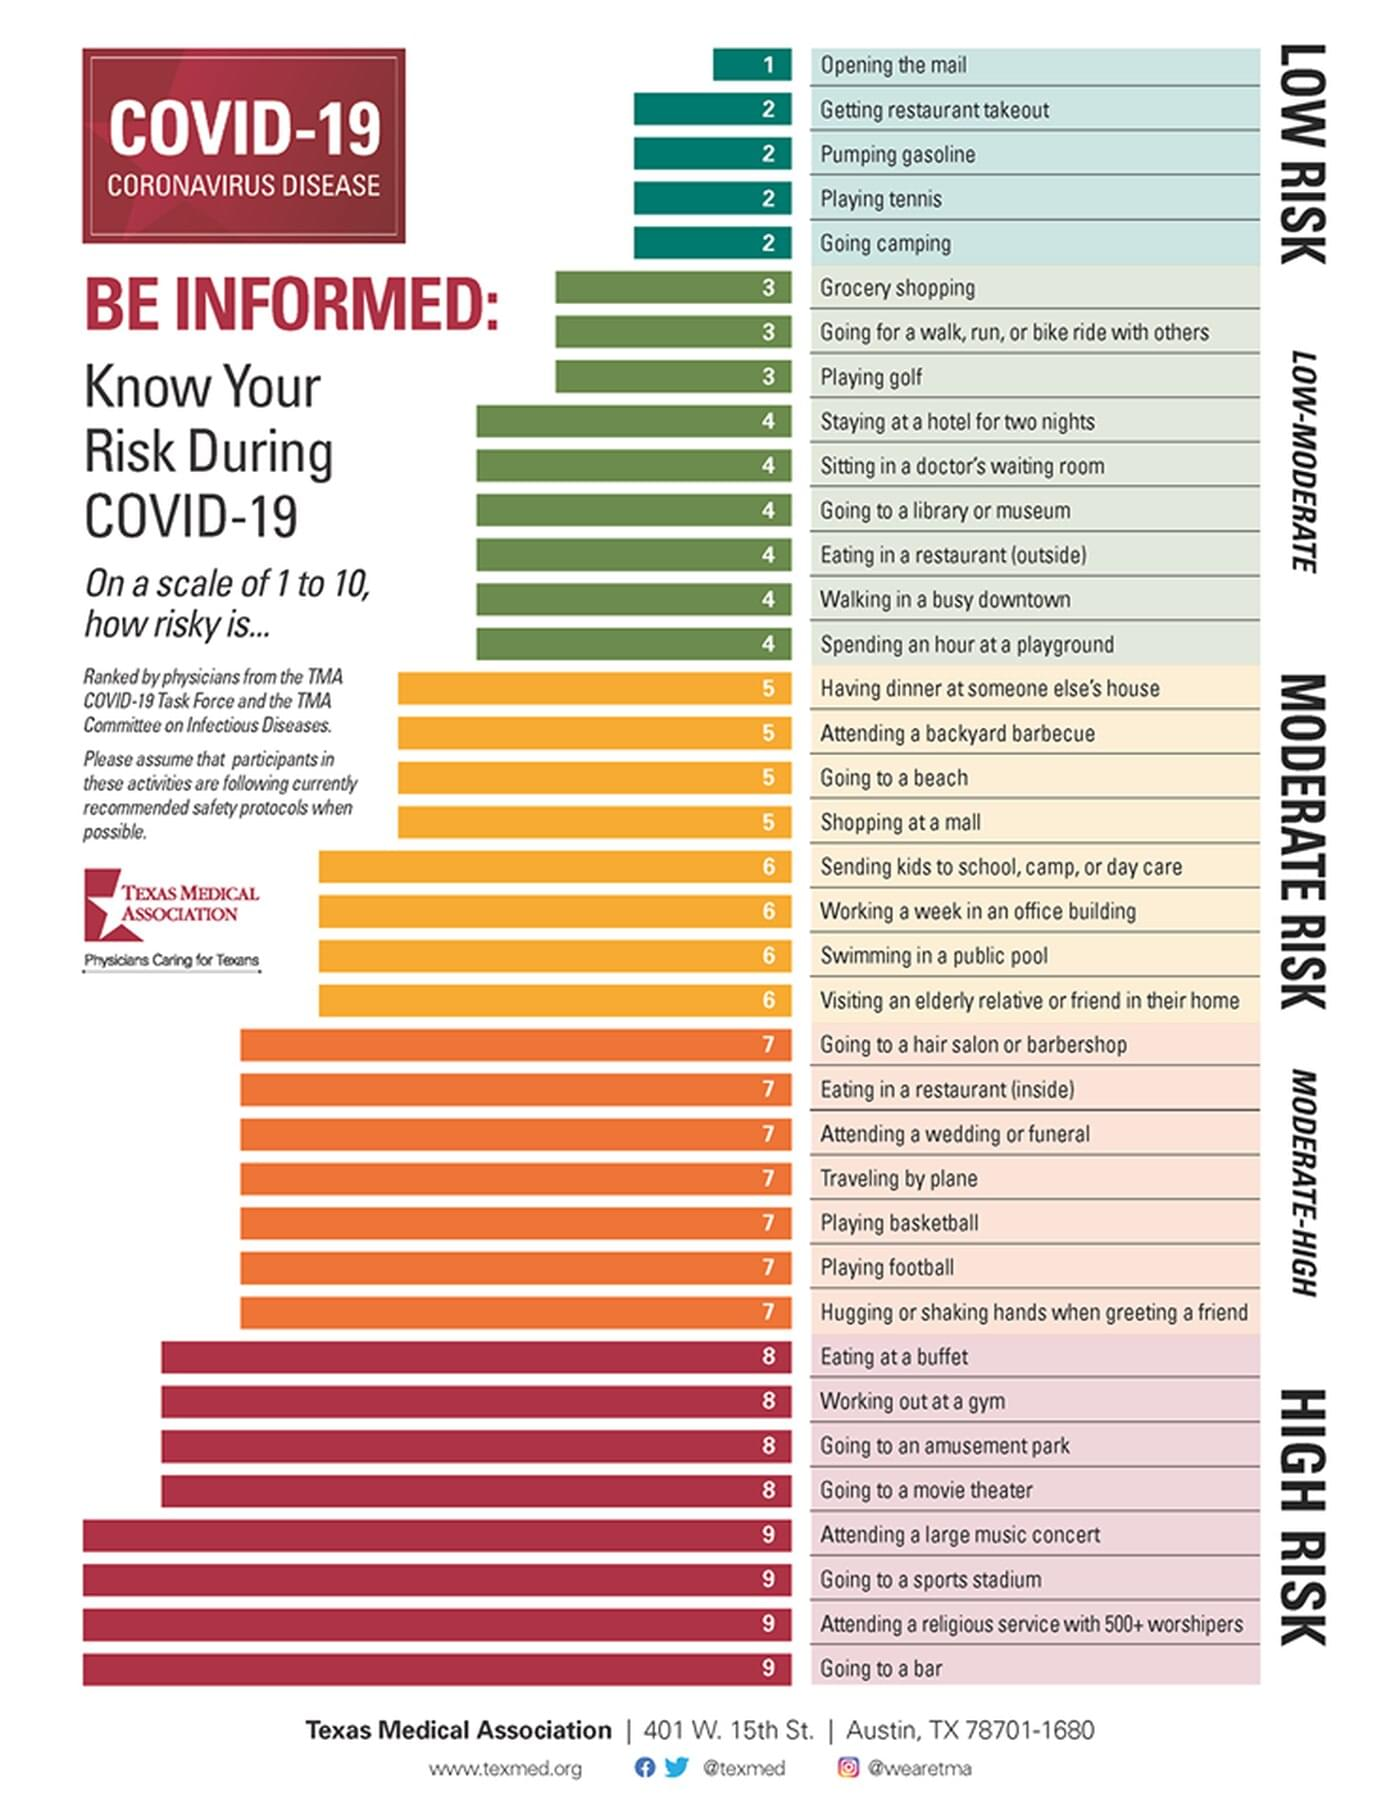 COVID19: Chart ranks lowest to highest risks of activities